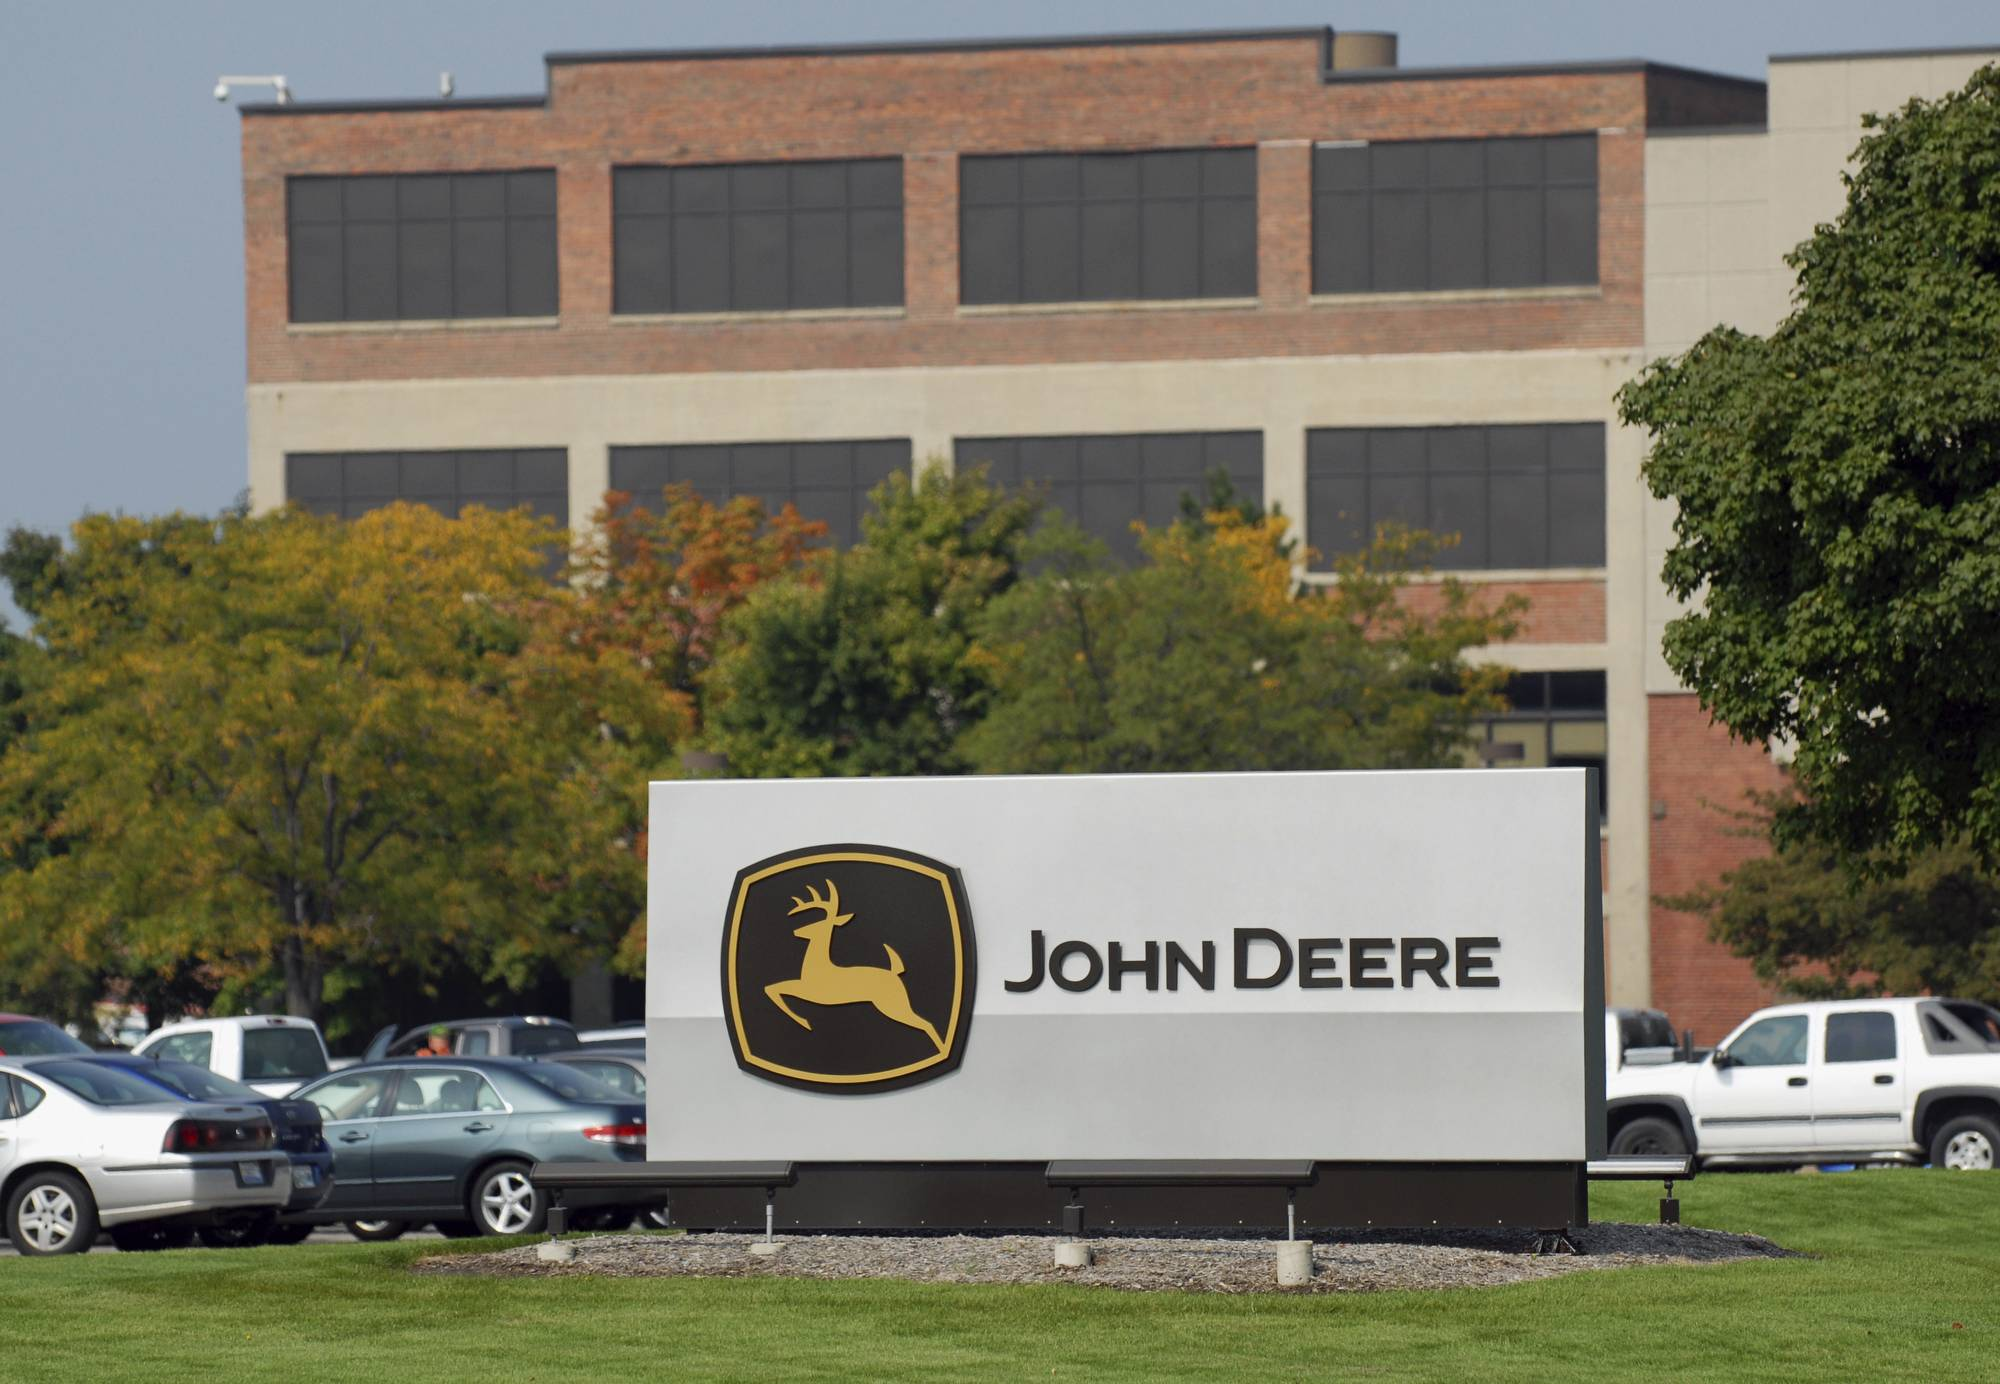 The John Deere facility in East Moline. Moline-based Deere & Co. says it will lay off about 120 workers at its combine plant in East Moline on March 31. The company said this week that it expects the North American farm-equipment industry to see a 5 percent to 10 percent drop in sales.